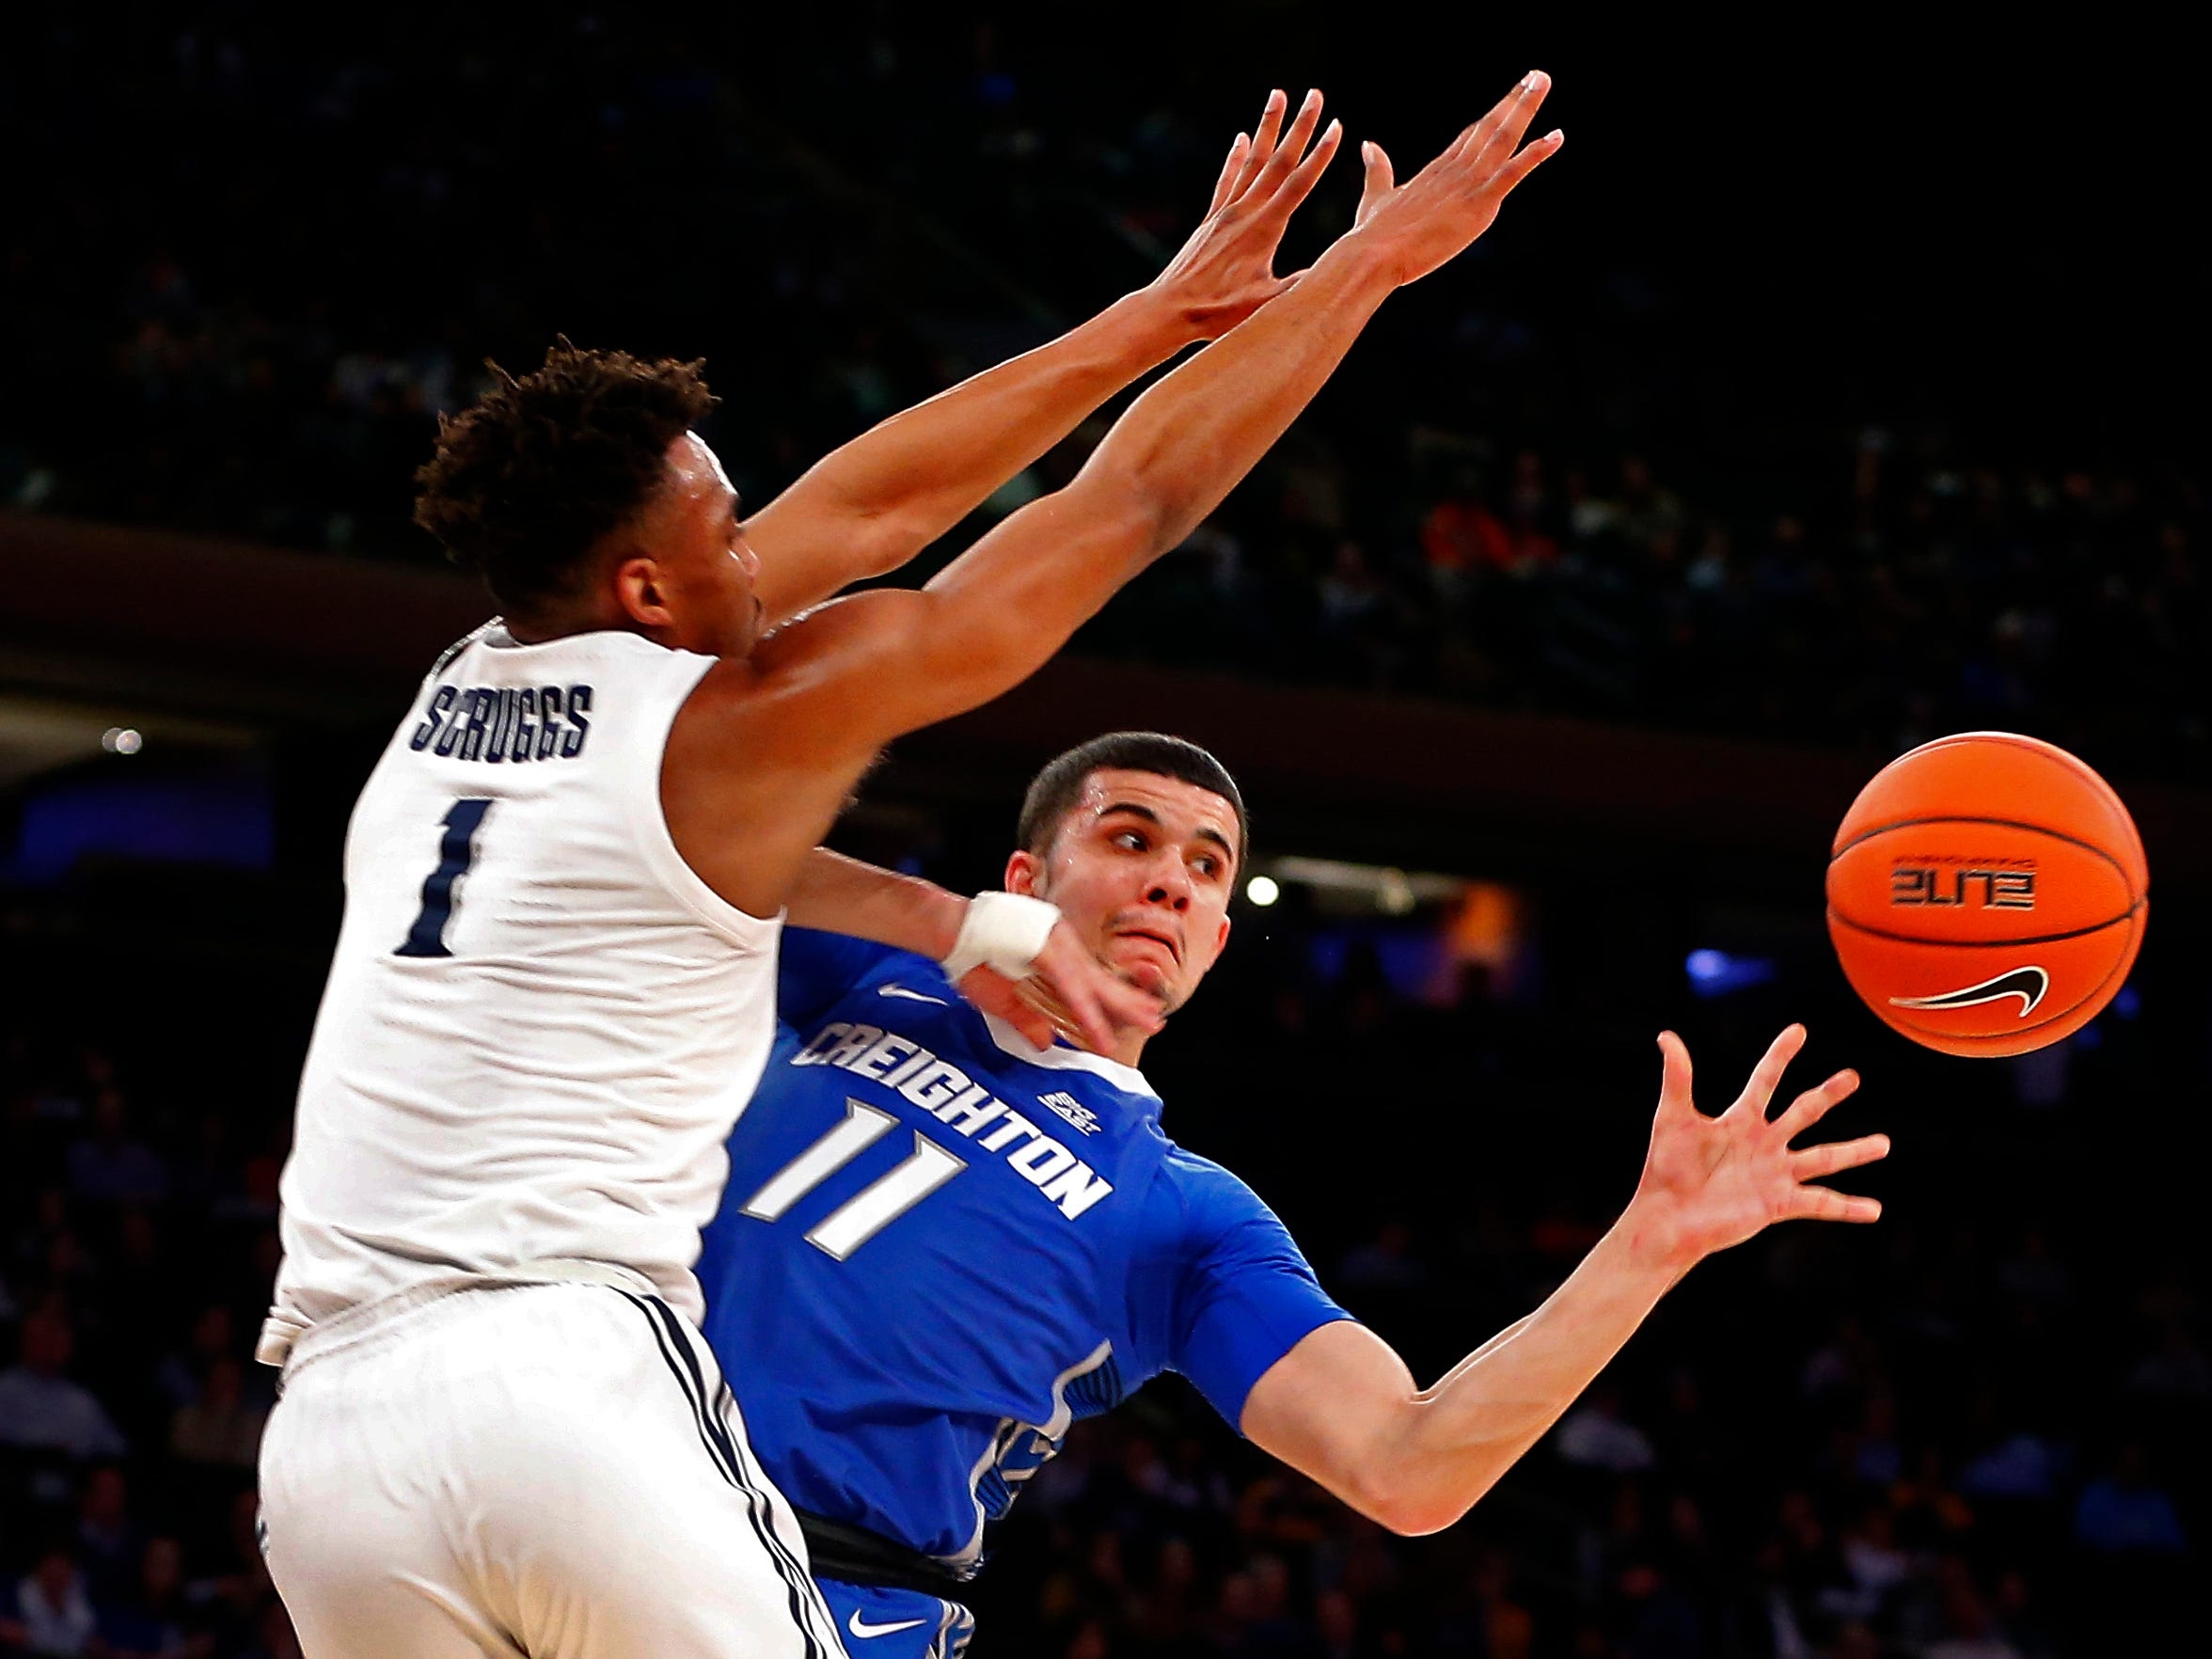 Xavier Musketeers guard Paul Scruggs (1) defends against Creighton Bluejays guard Marcus Zegarowski (11) during the first half of a quarterfinal game of the Big East conference tournament at Madison Square Garden. Mandatory